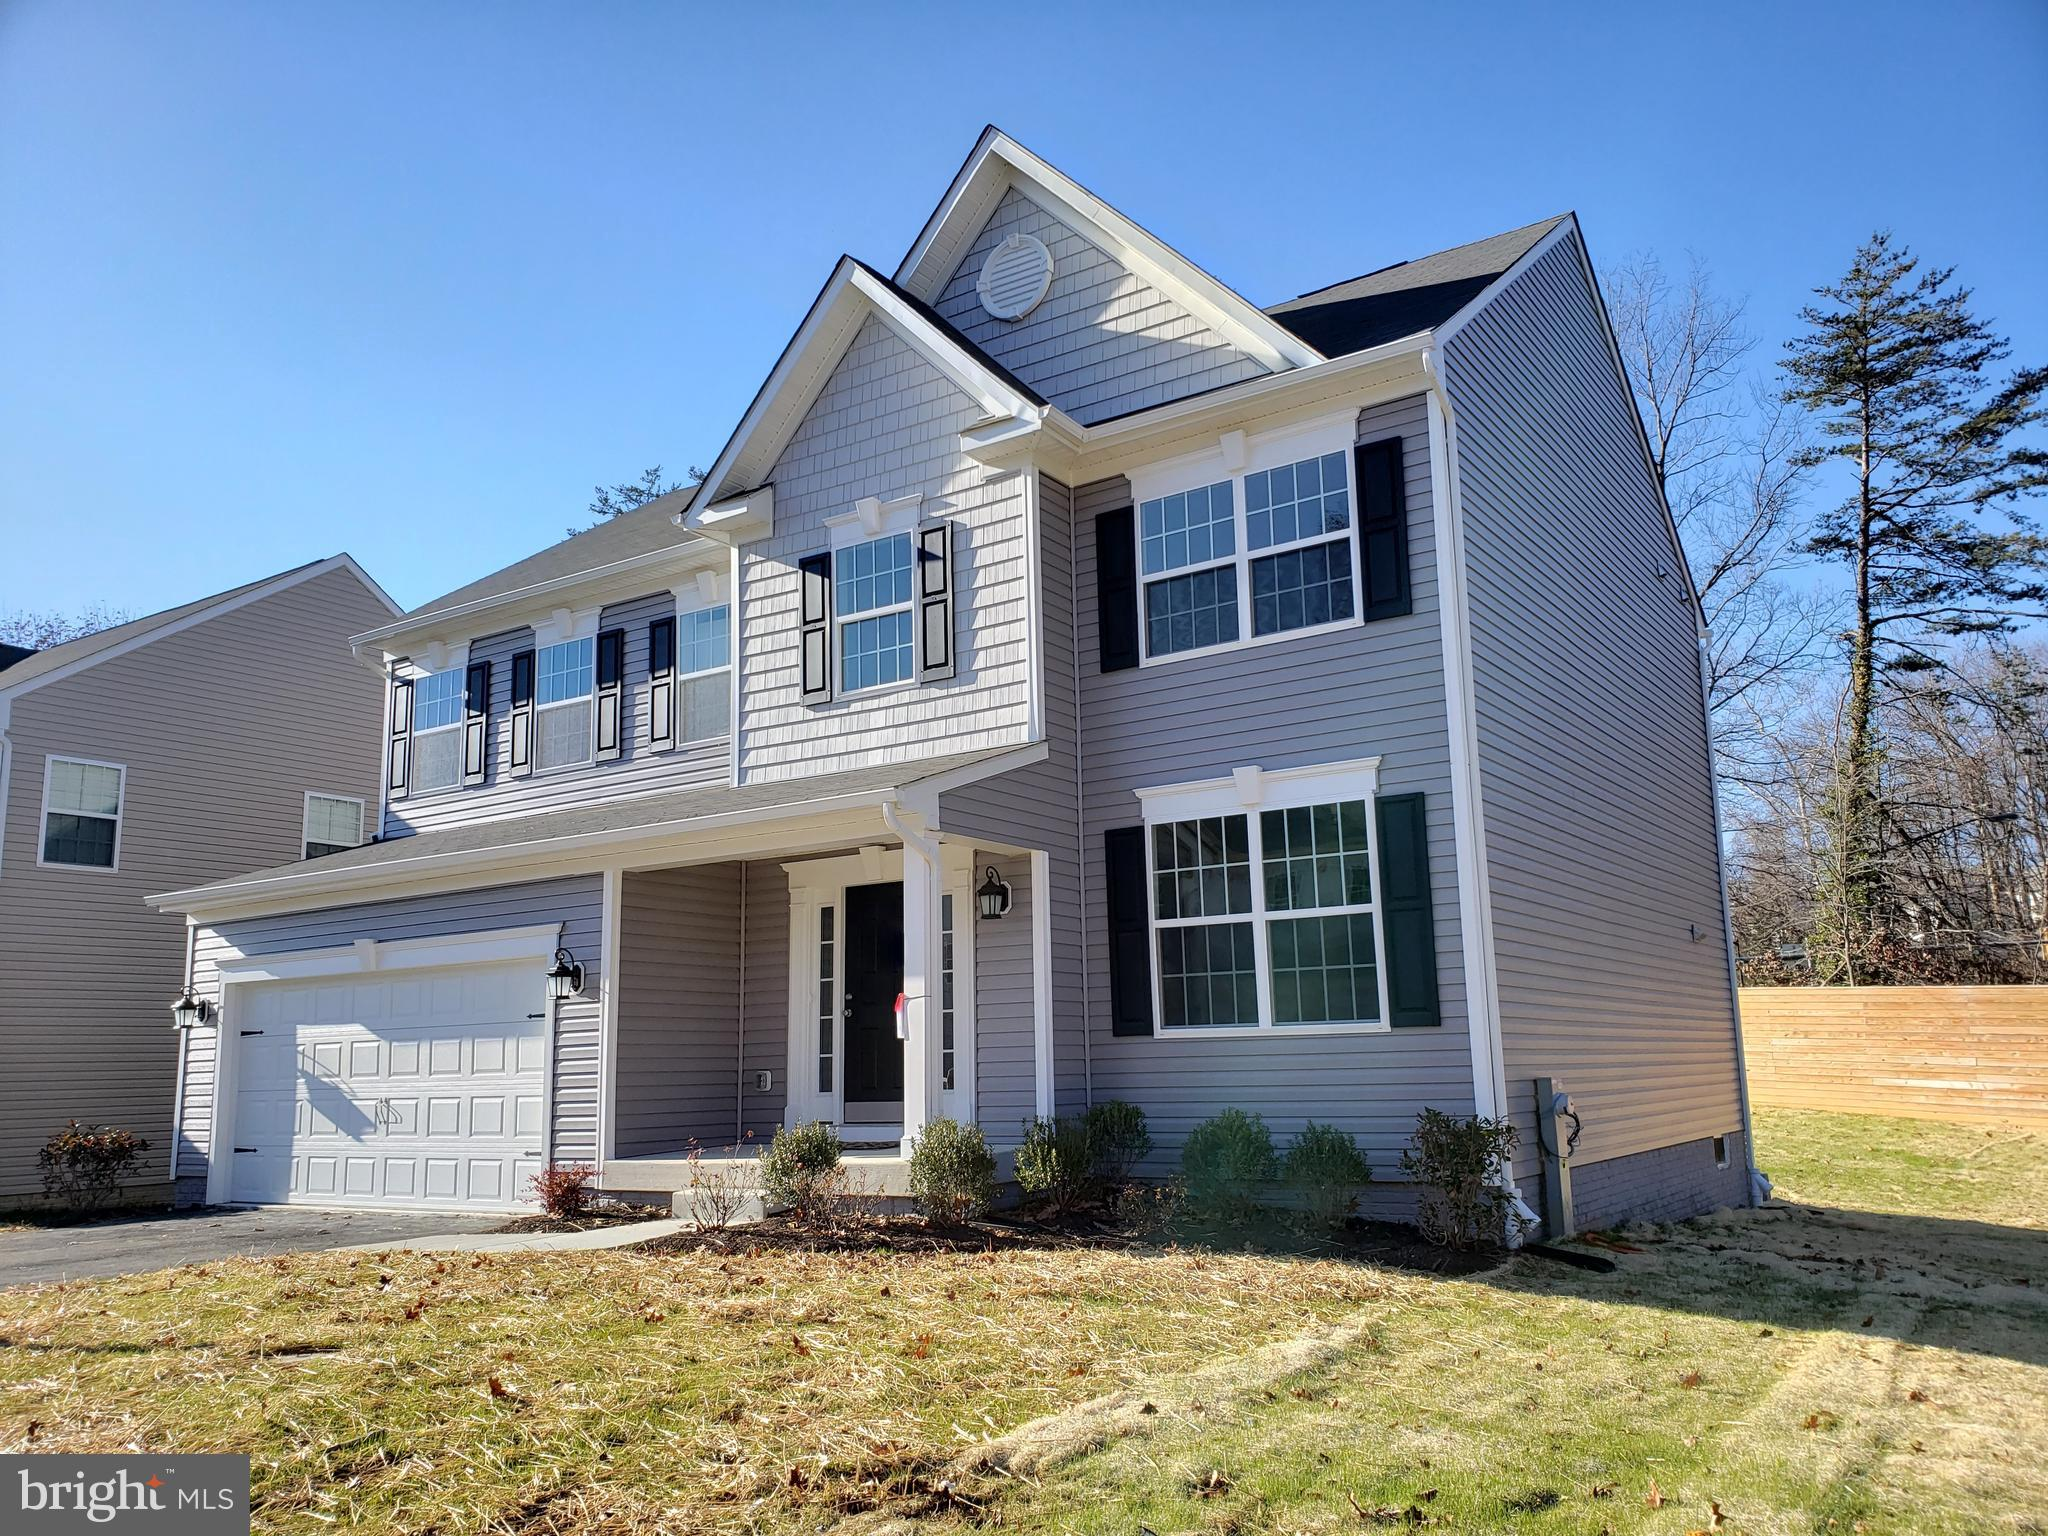 7572 KINDLER OVERLOOK DRIVE, LAUREL, MD 20723